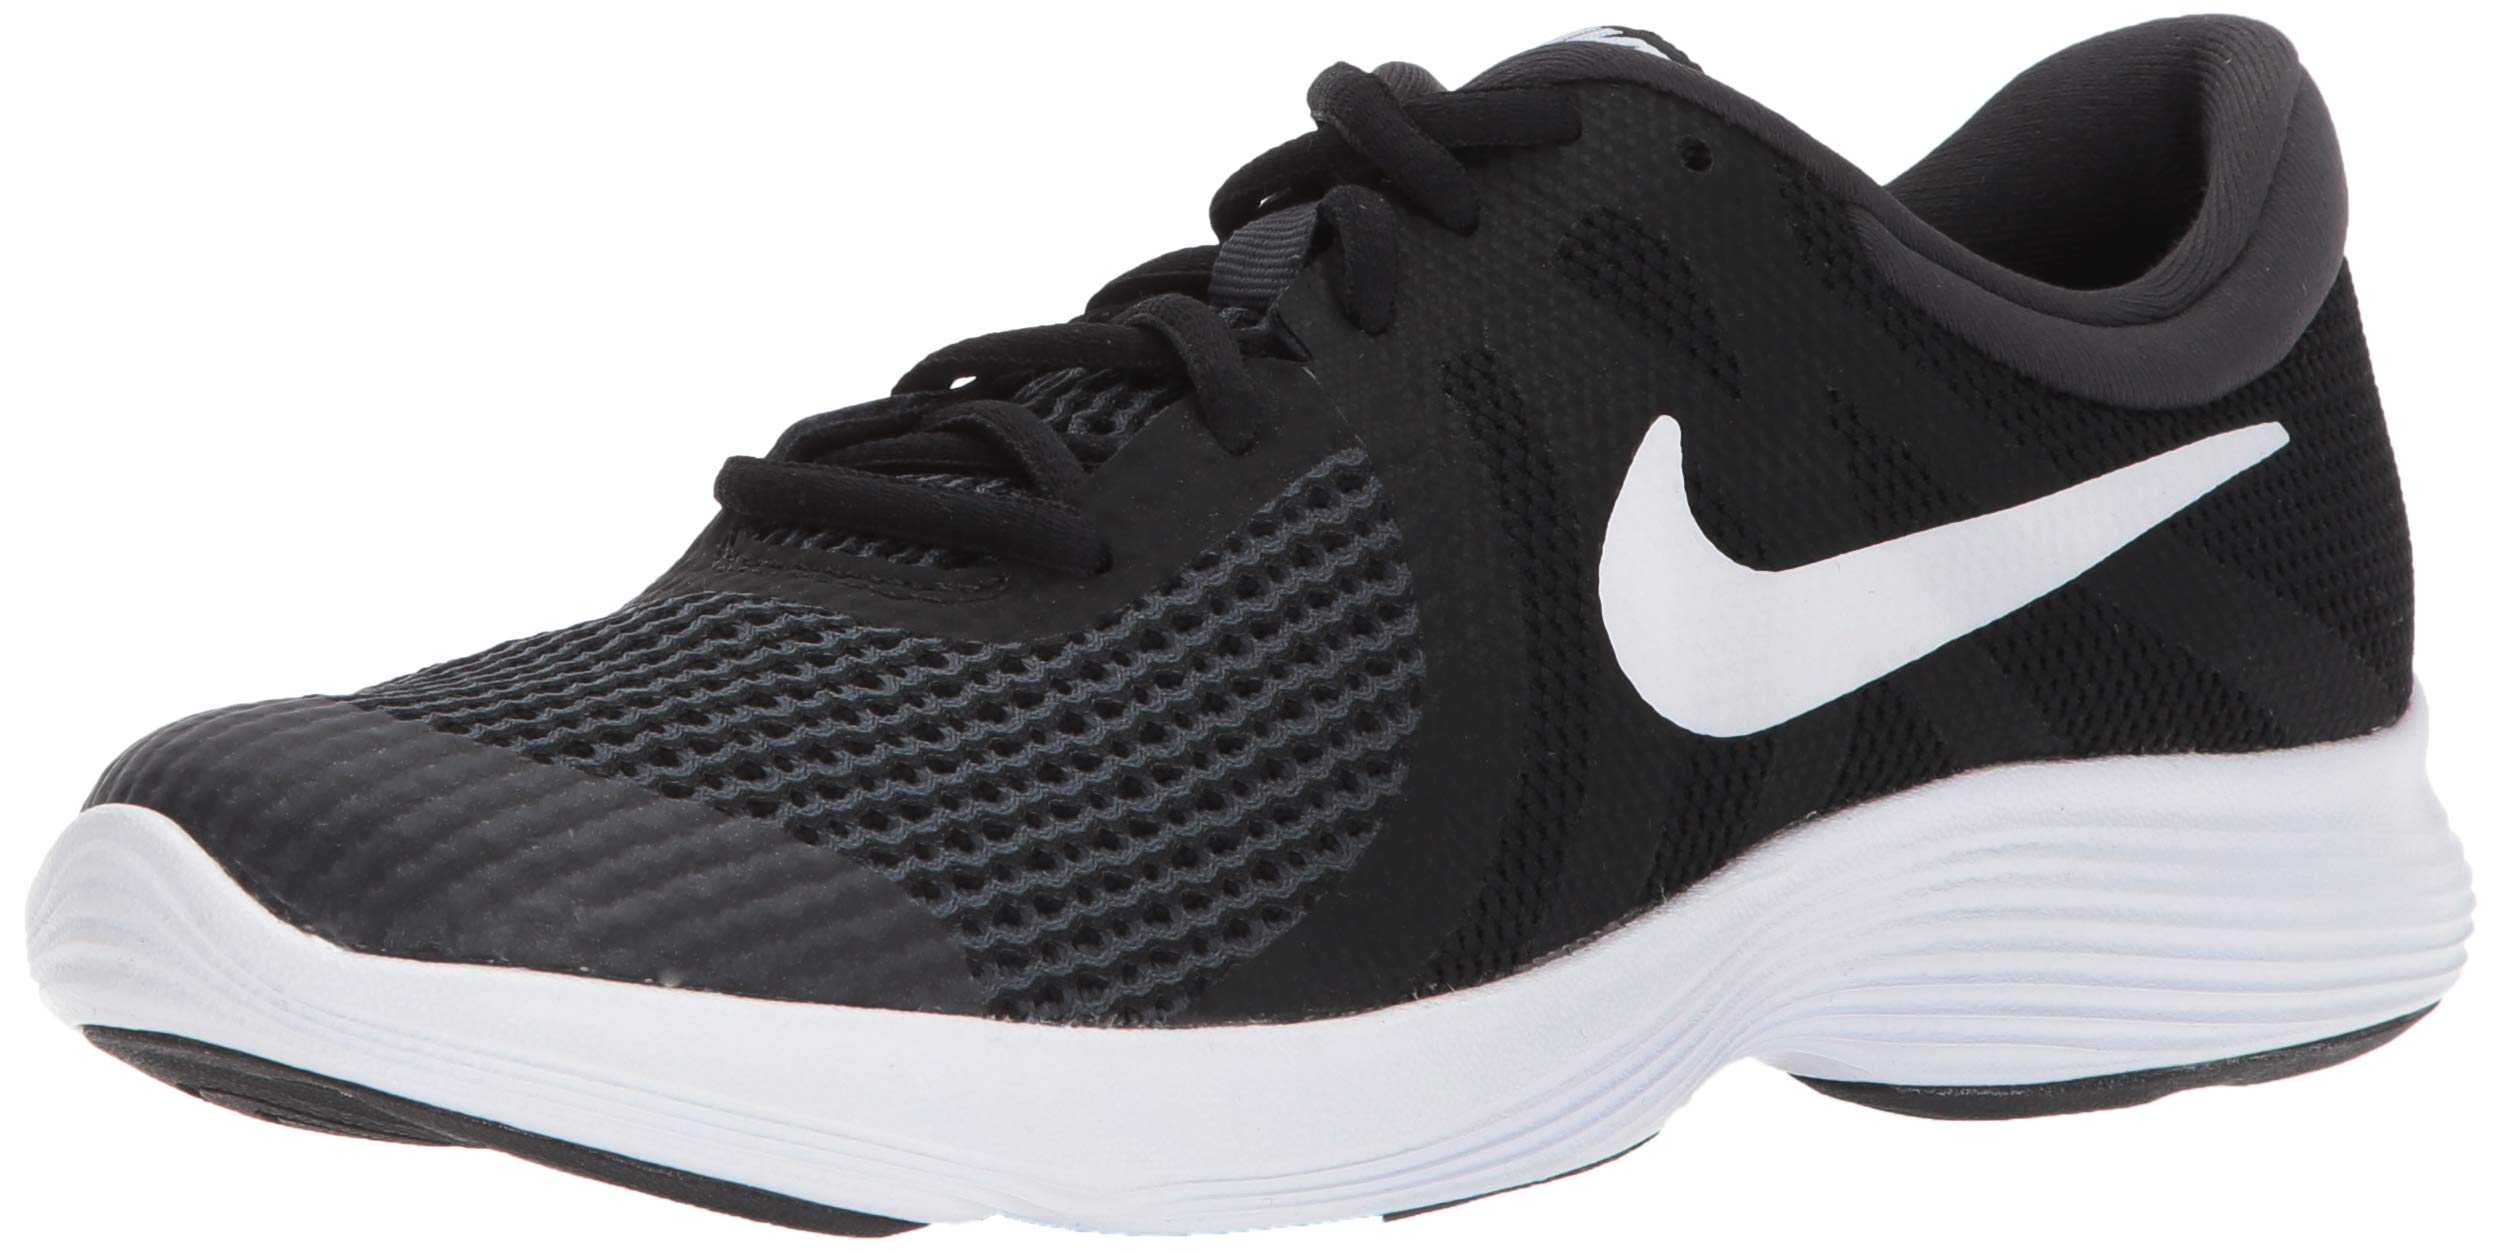 Nike Boys' Revolution 4 (GS) Running Shoe, Black/White-Anthracite, 6.5Y Youth US Big Kid by Nike